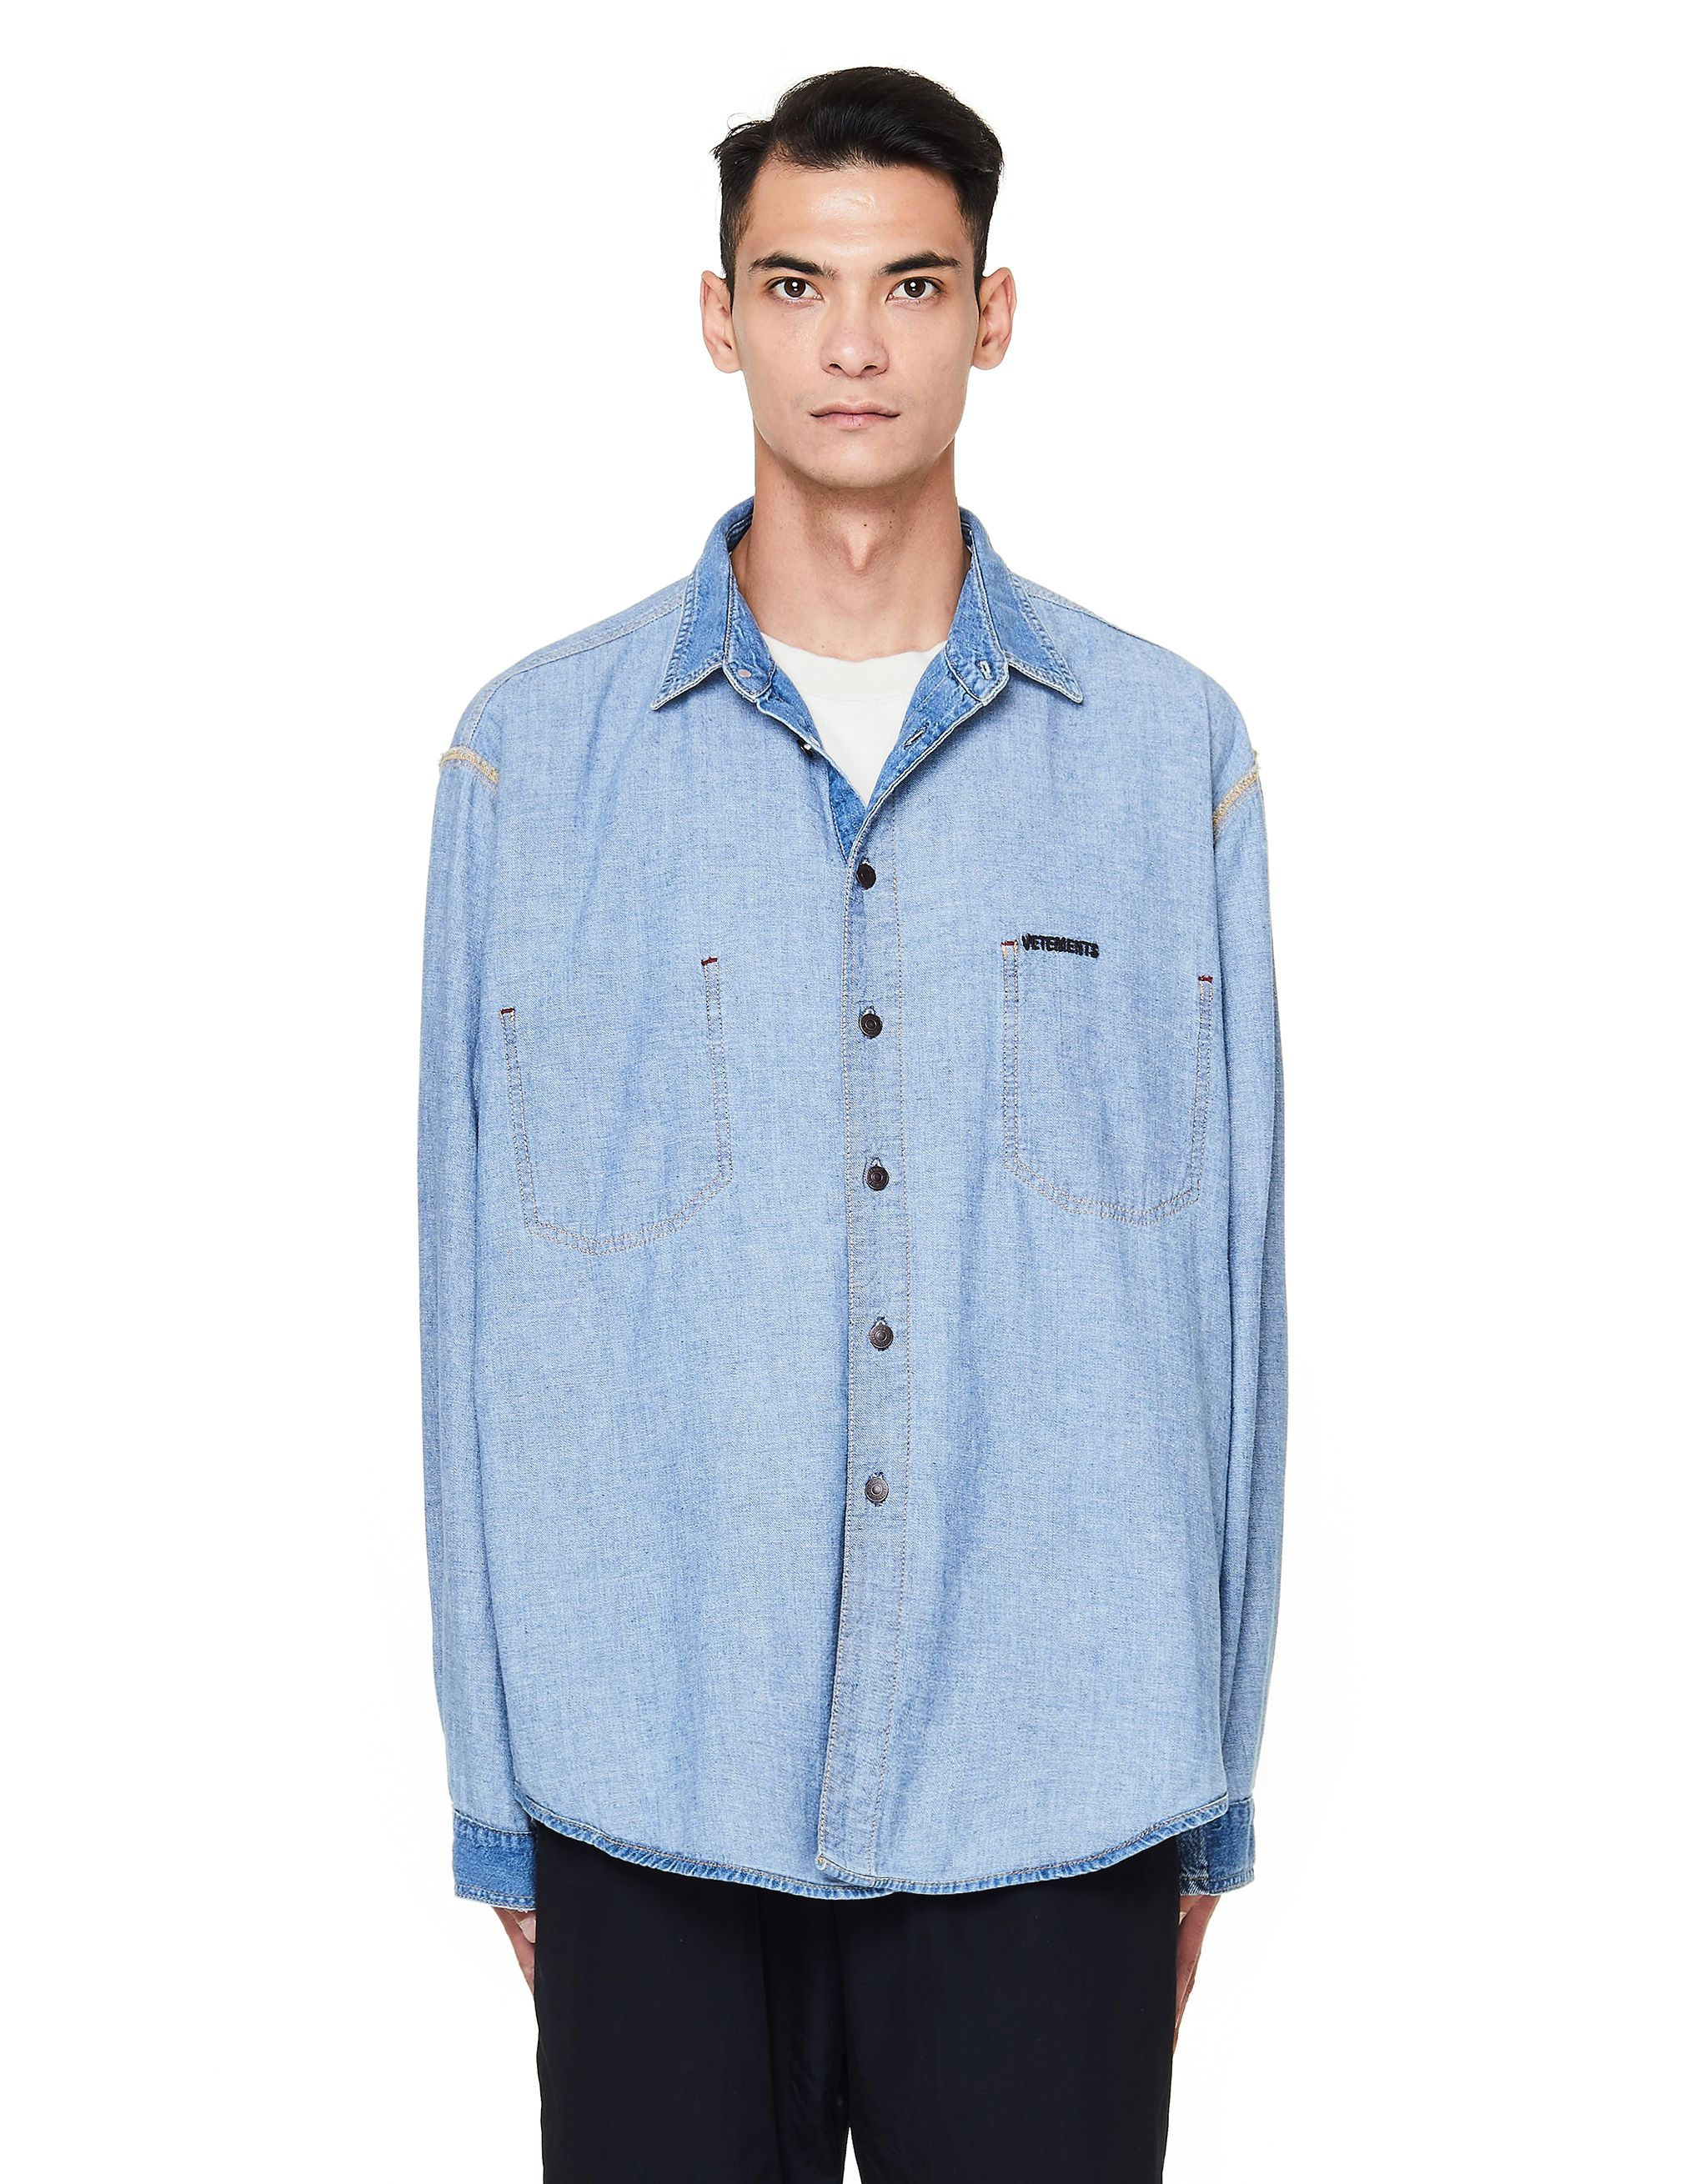 d426b256031 VETEMENTS BLUE OVERSIZED DENIM SHIRT.  vetements  cloth